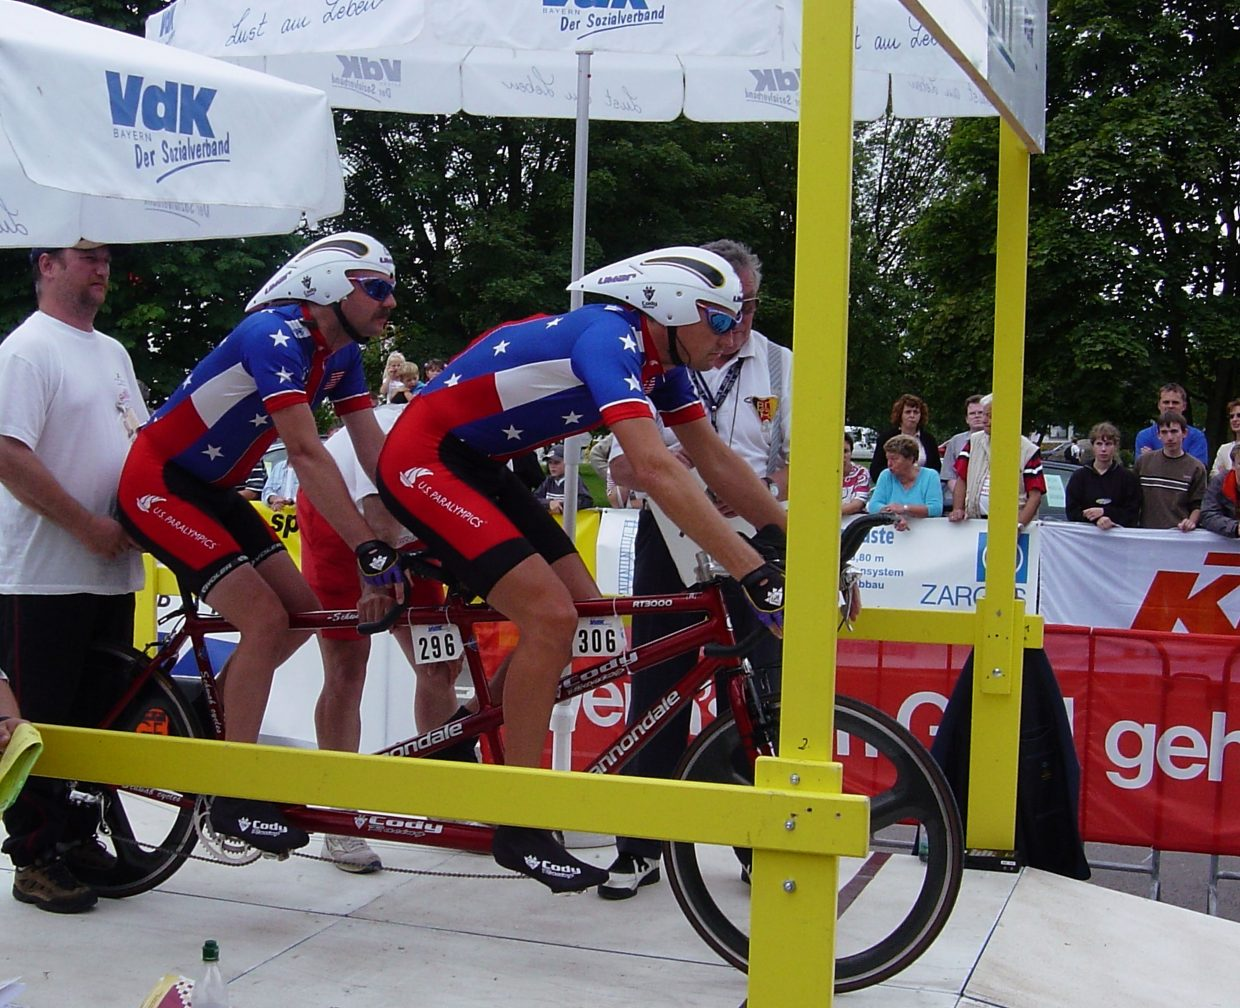 Summit Cover resident Bill Ramsay (front) with his tandem biking partner, Randy Hampton, at the 2002 World Championships in Germany. Ramsay moved to Summit County five year ago after a stint coaching and traveling with World Cup tandem teams.